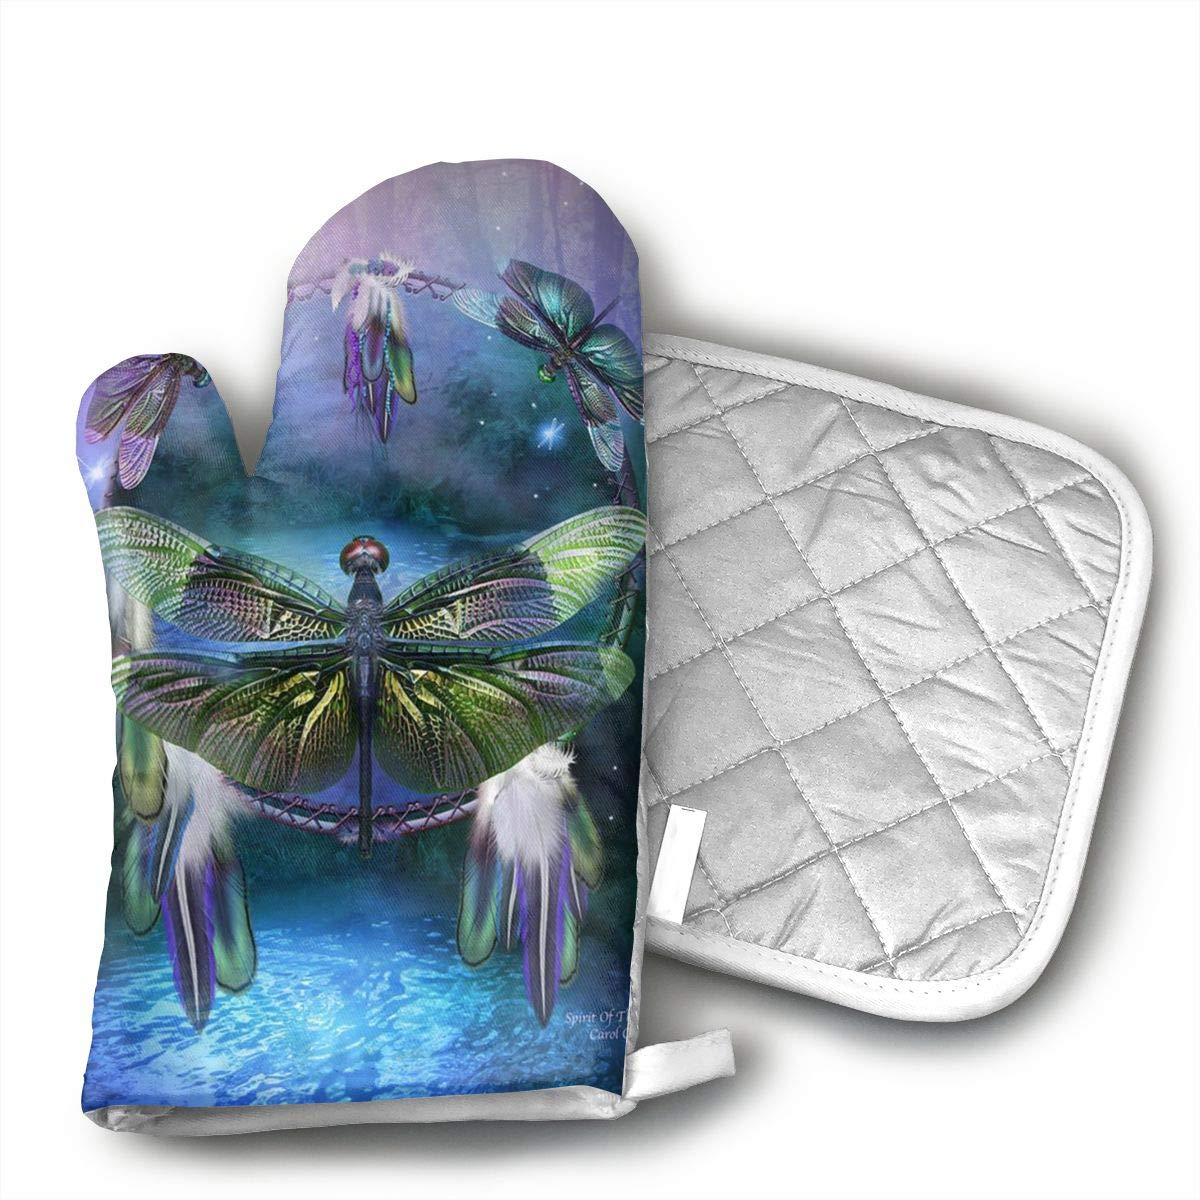 Wiqo9 Dream Catcher Dragonfly Oven Mitts and Pot Holders Kitchen Mitten Cooking Gloves,Cooking, Baking, BBQ.